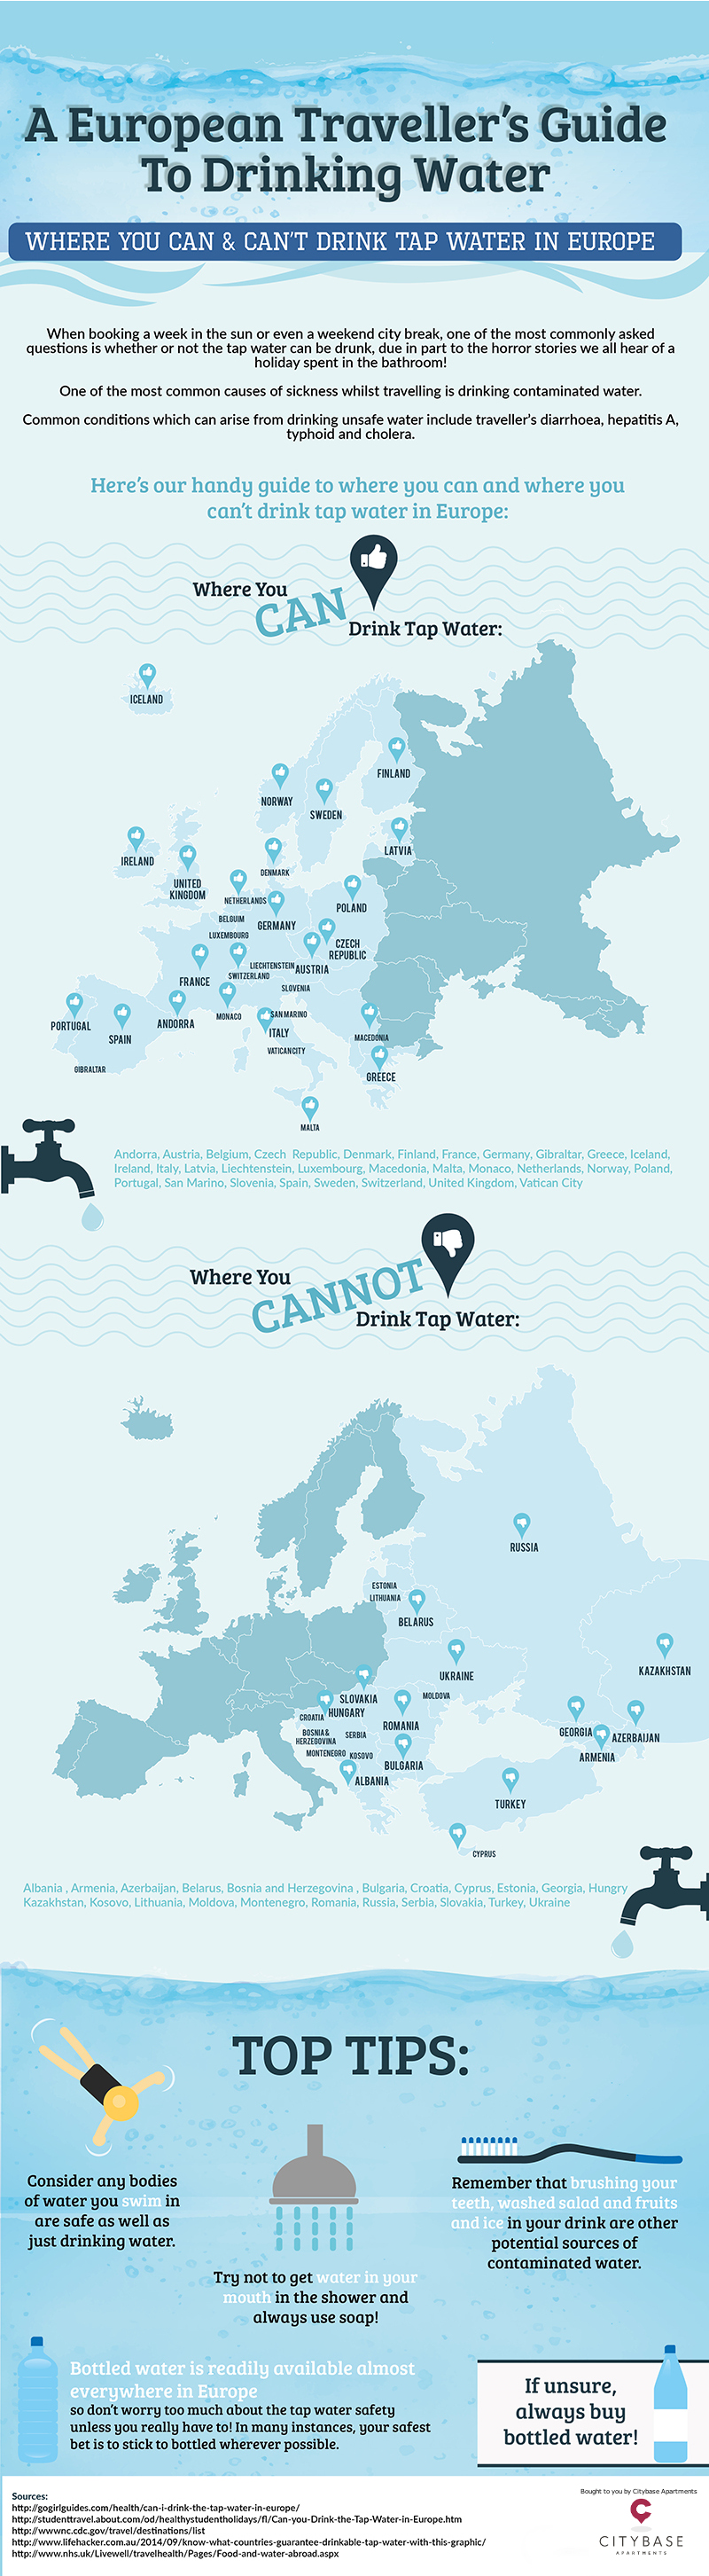 A European Traveller's Guide To Drinking Water #infographic #Water #Drinking Water #European Traveller's #Travel